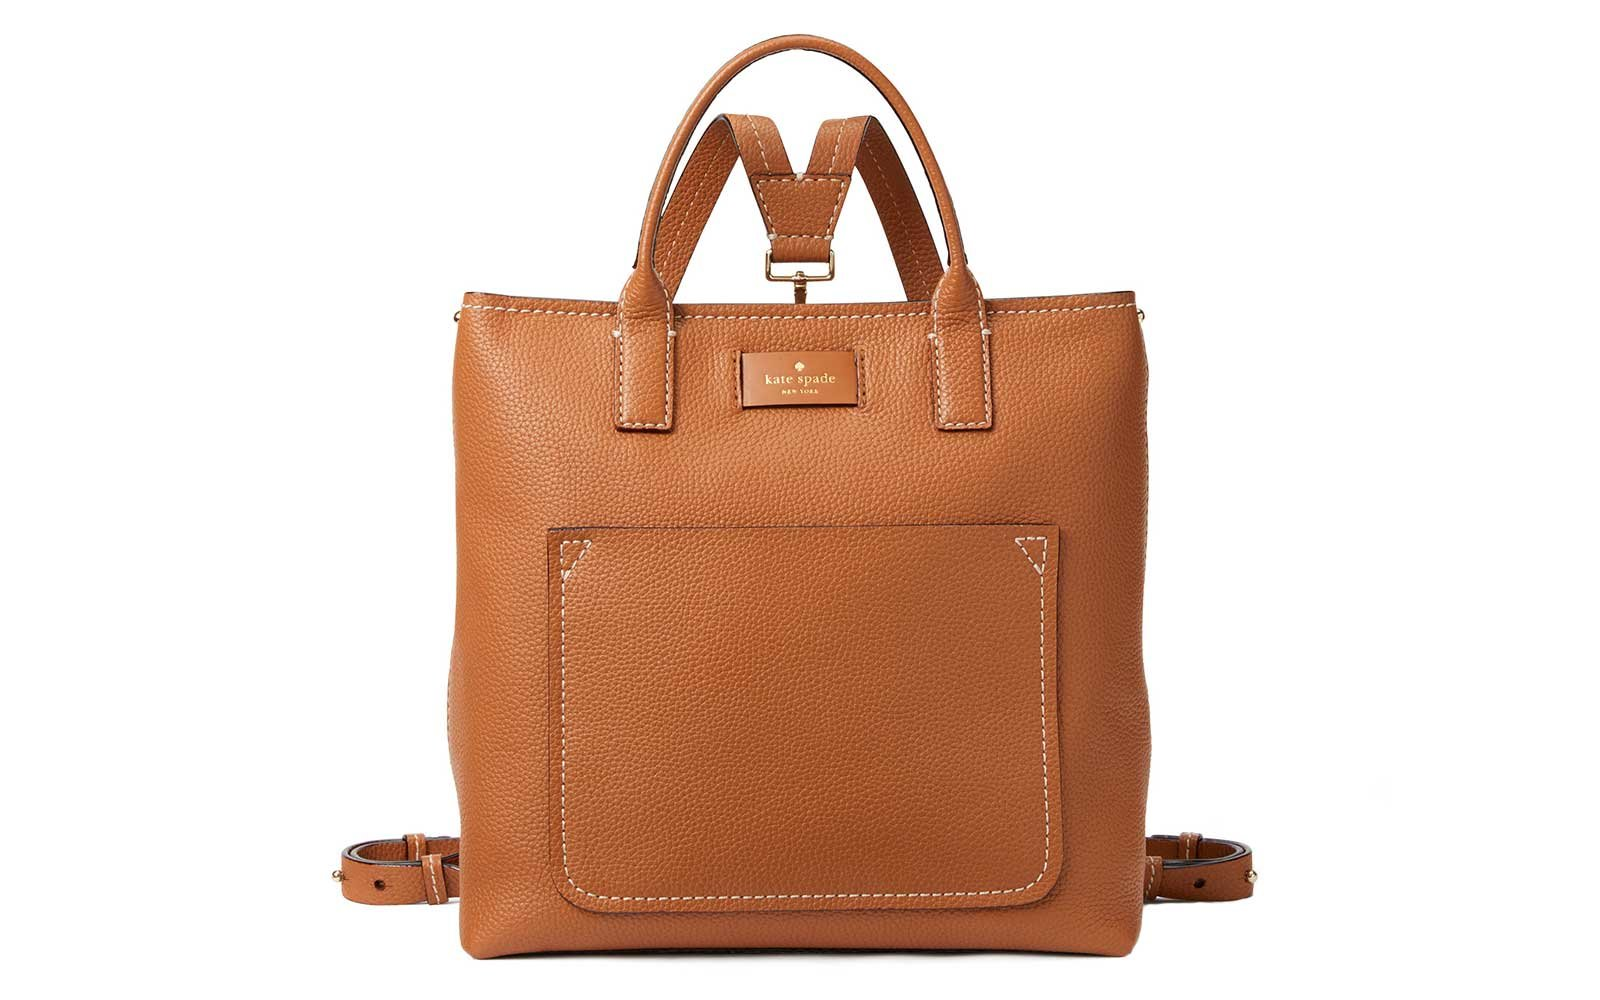 24a0a23c90 Kate Spade New York Maple Street Kenzie Leather Convertible Packpack